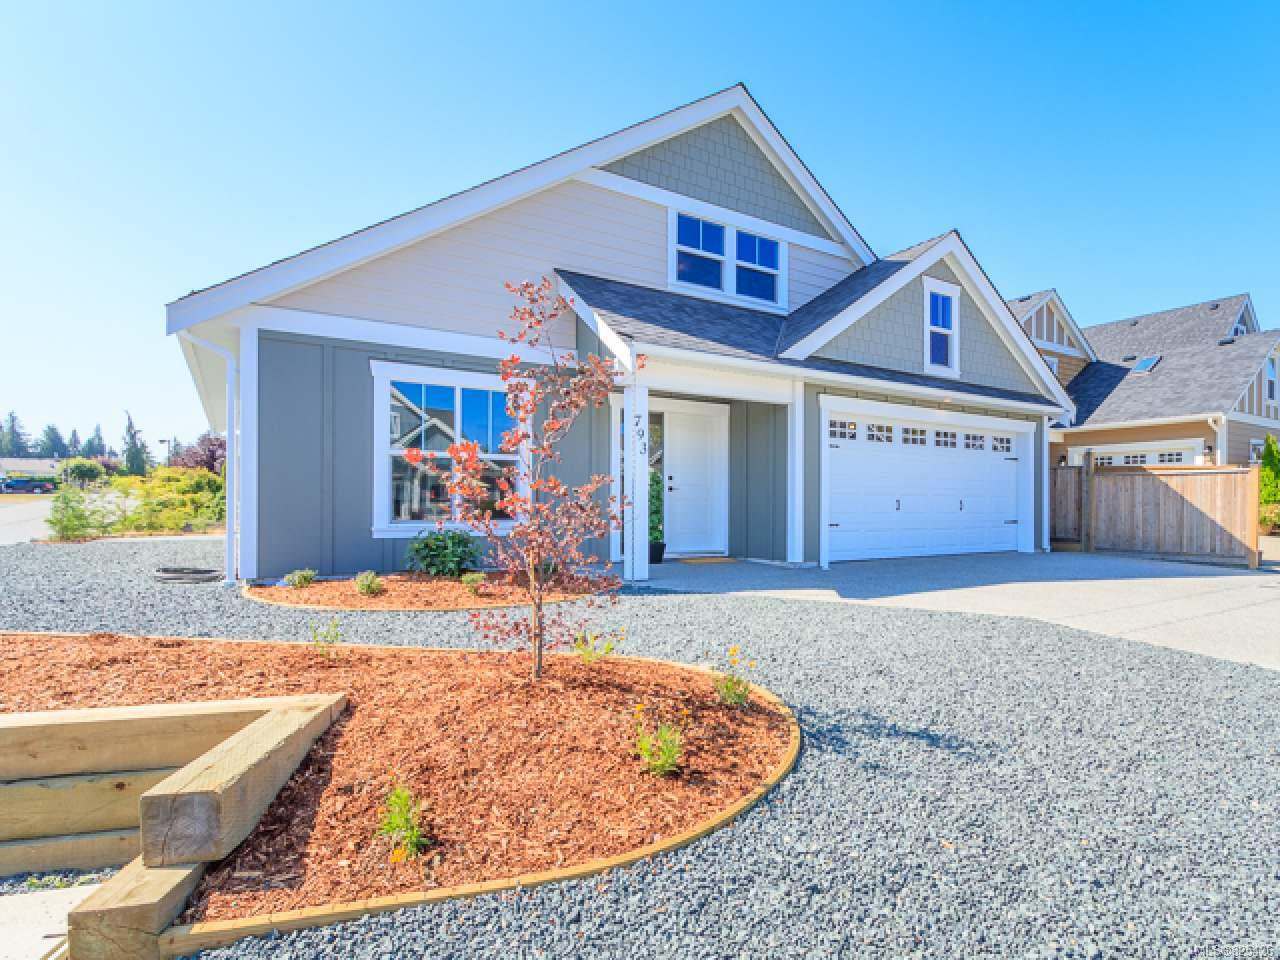 Main Photo: 793 STANHOPE ROAD in PARKSVILLE: PQ Parksville House for sale (Parksville/Qualicum)  : MLS®# 825426